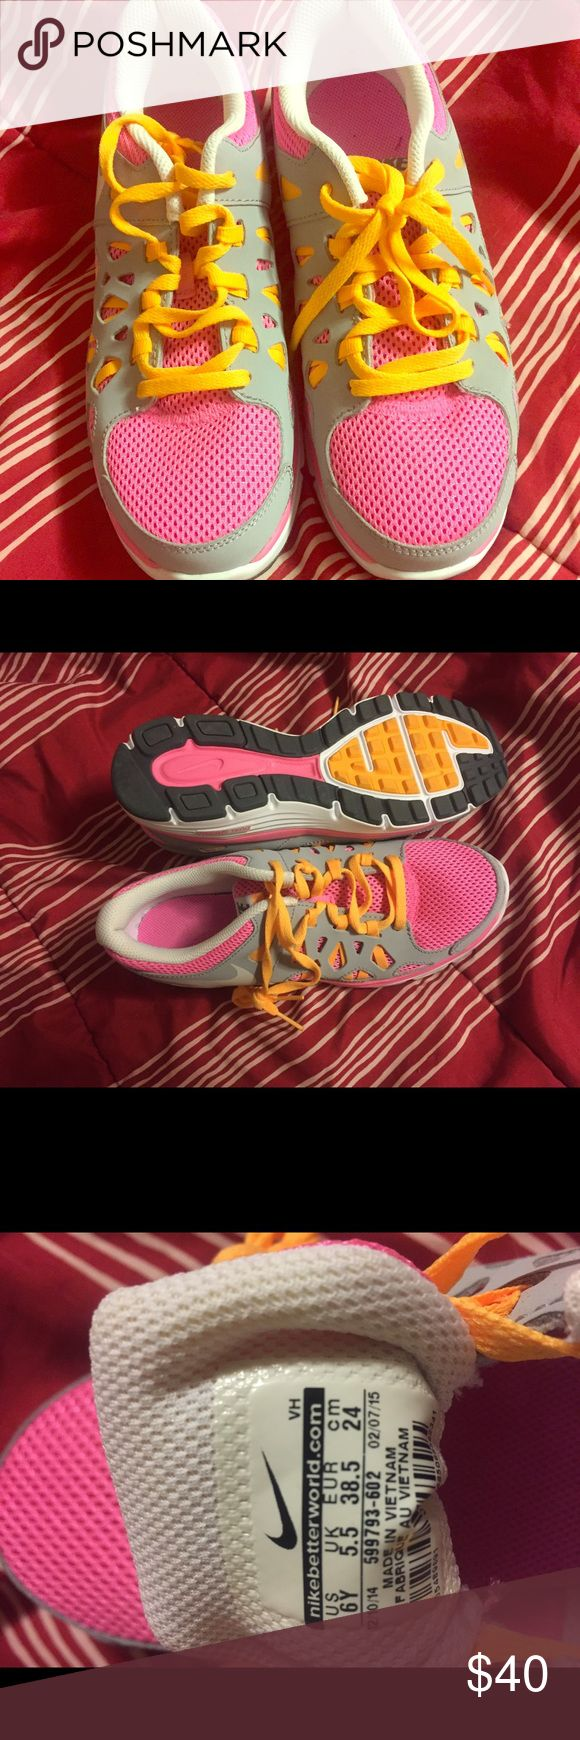 Nike Dual Fusion Run 2 sneakers size 6Y Brand new sneakers. Never worn. Pink, orange and gray Nike Dual Fusion sneakers. Size 6Y Nike Shoes Sneakers